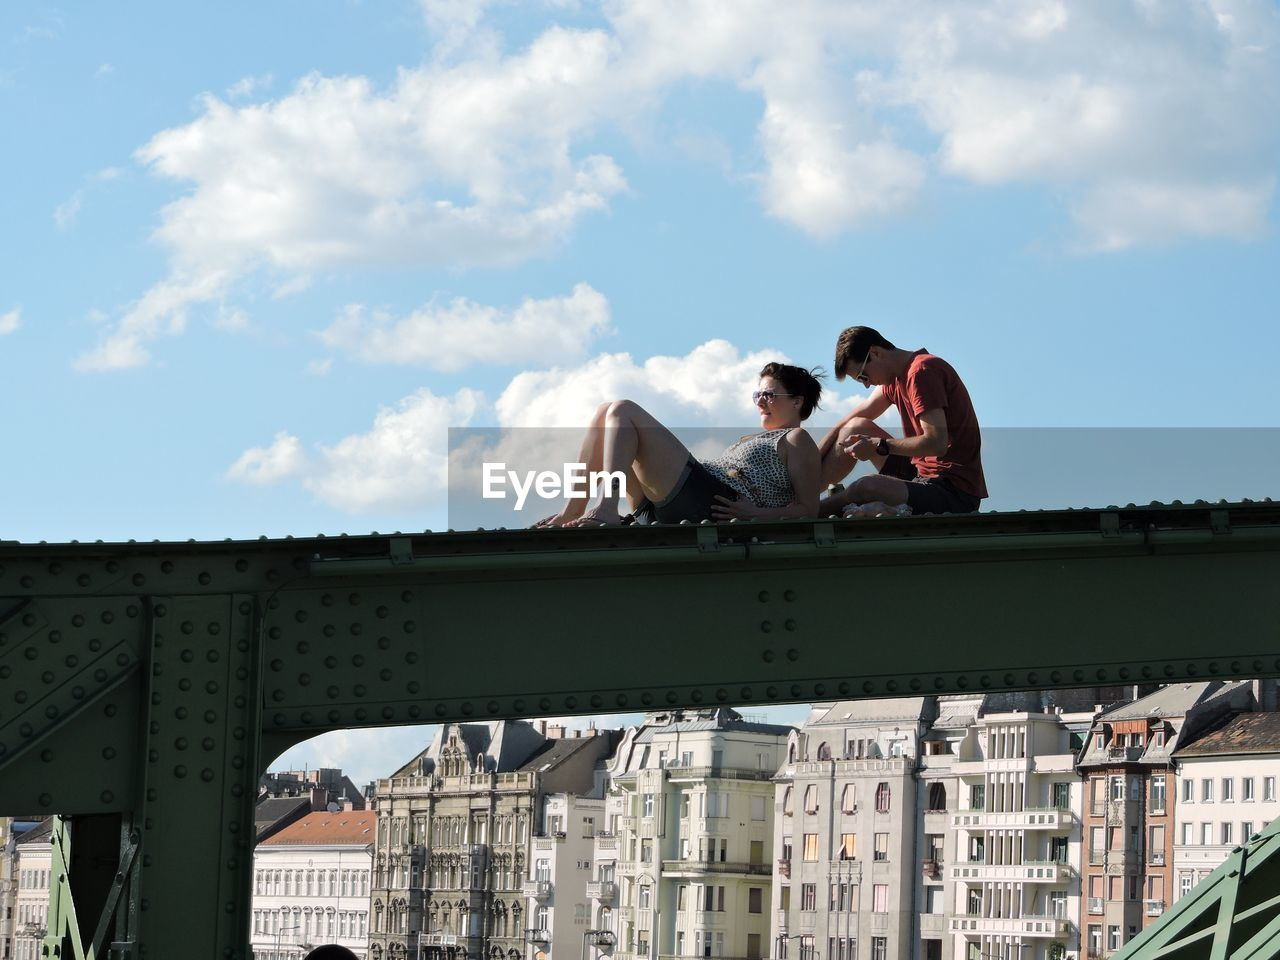 People Sitting On Railing In City Against Sky